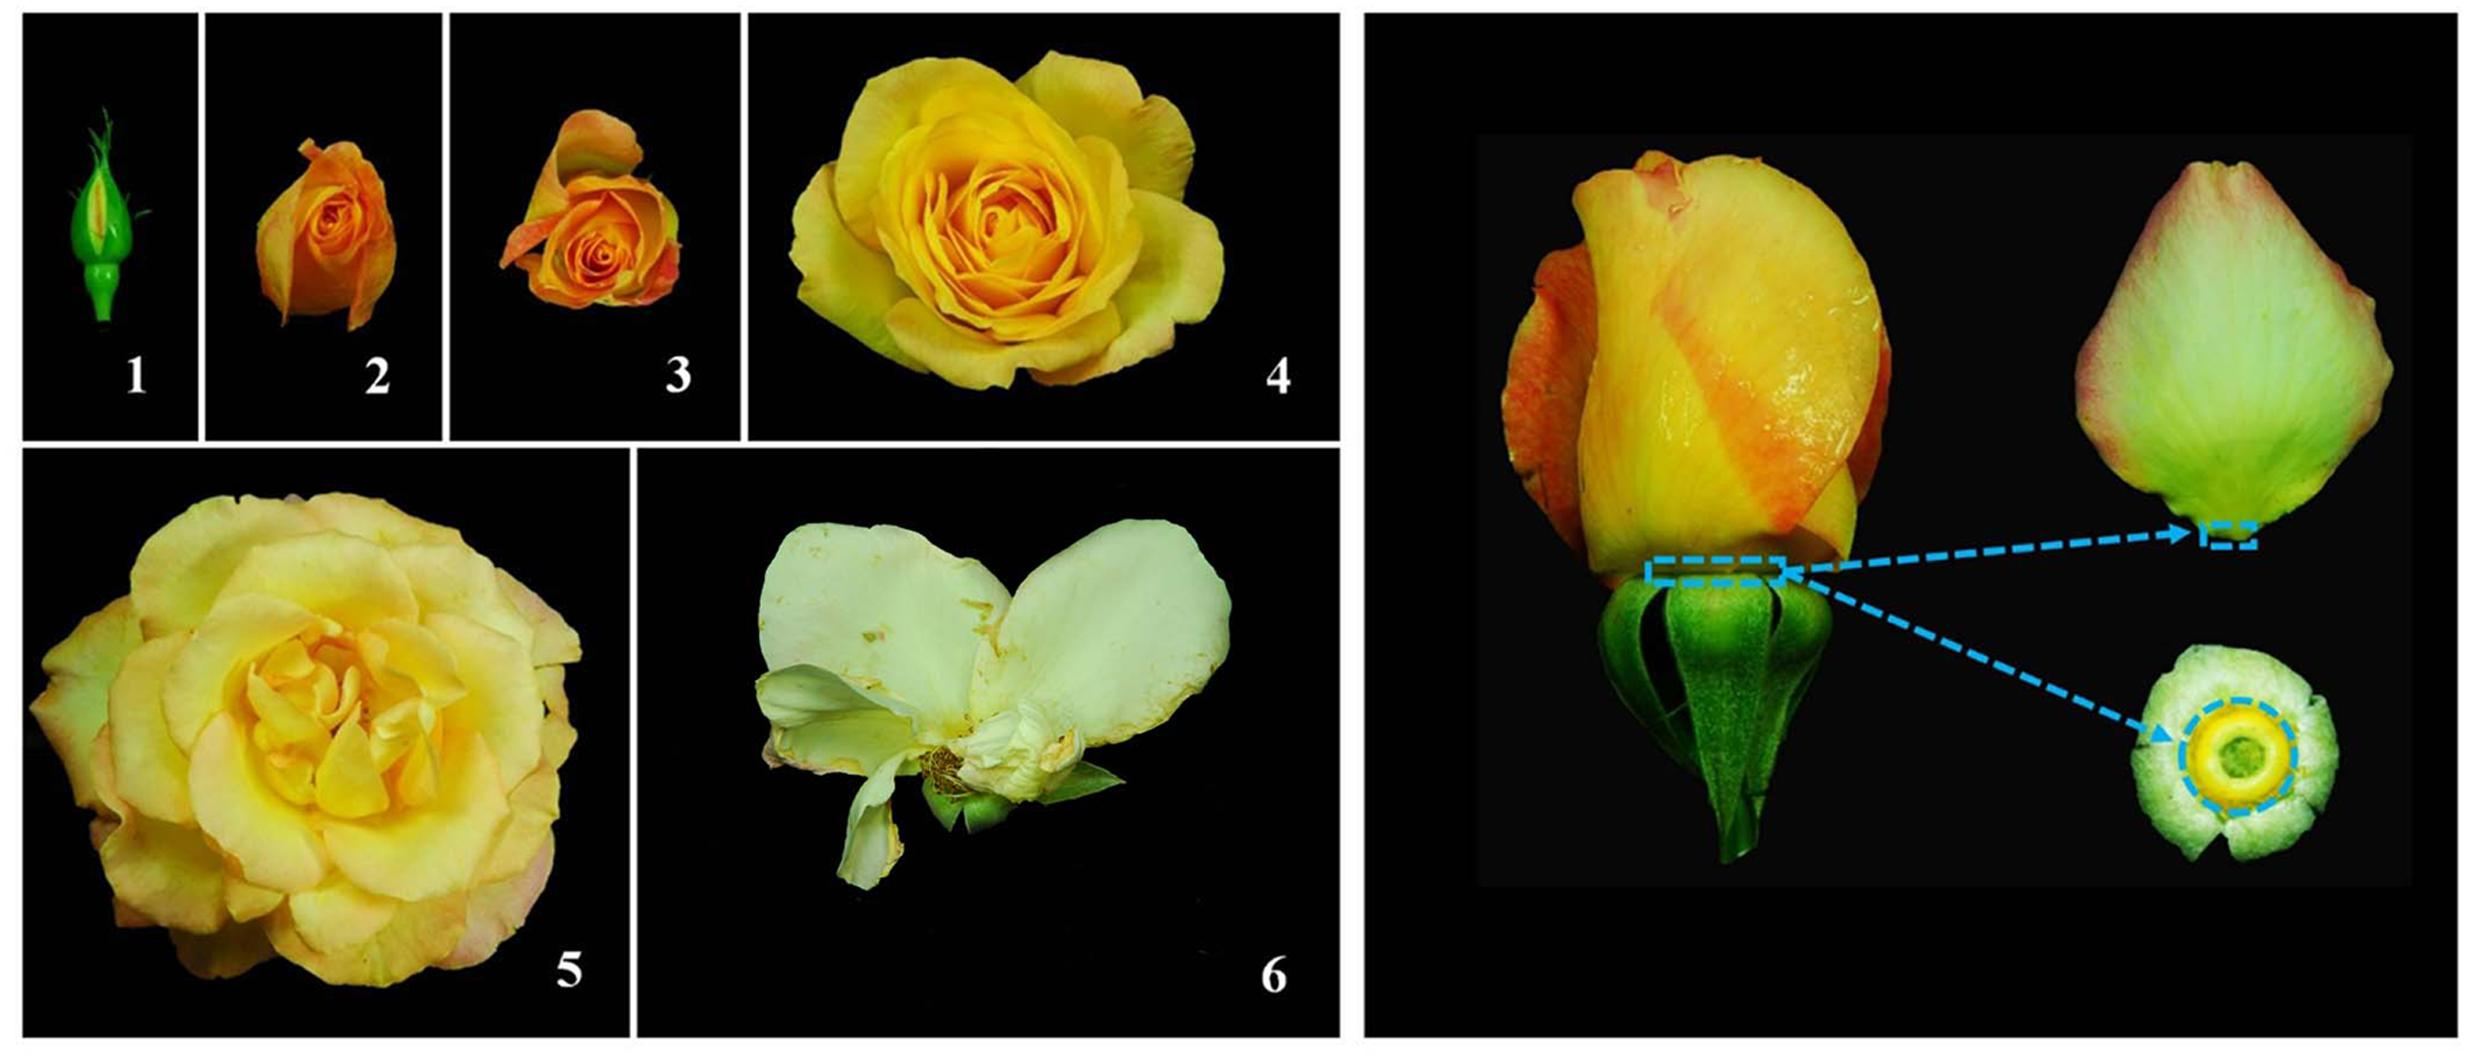 Frontiers Transcriptome Profiling Of Petal Abscission Zone And Rose Anatomy Diagram Related Keywords Suggestions Figure 1 Flower